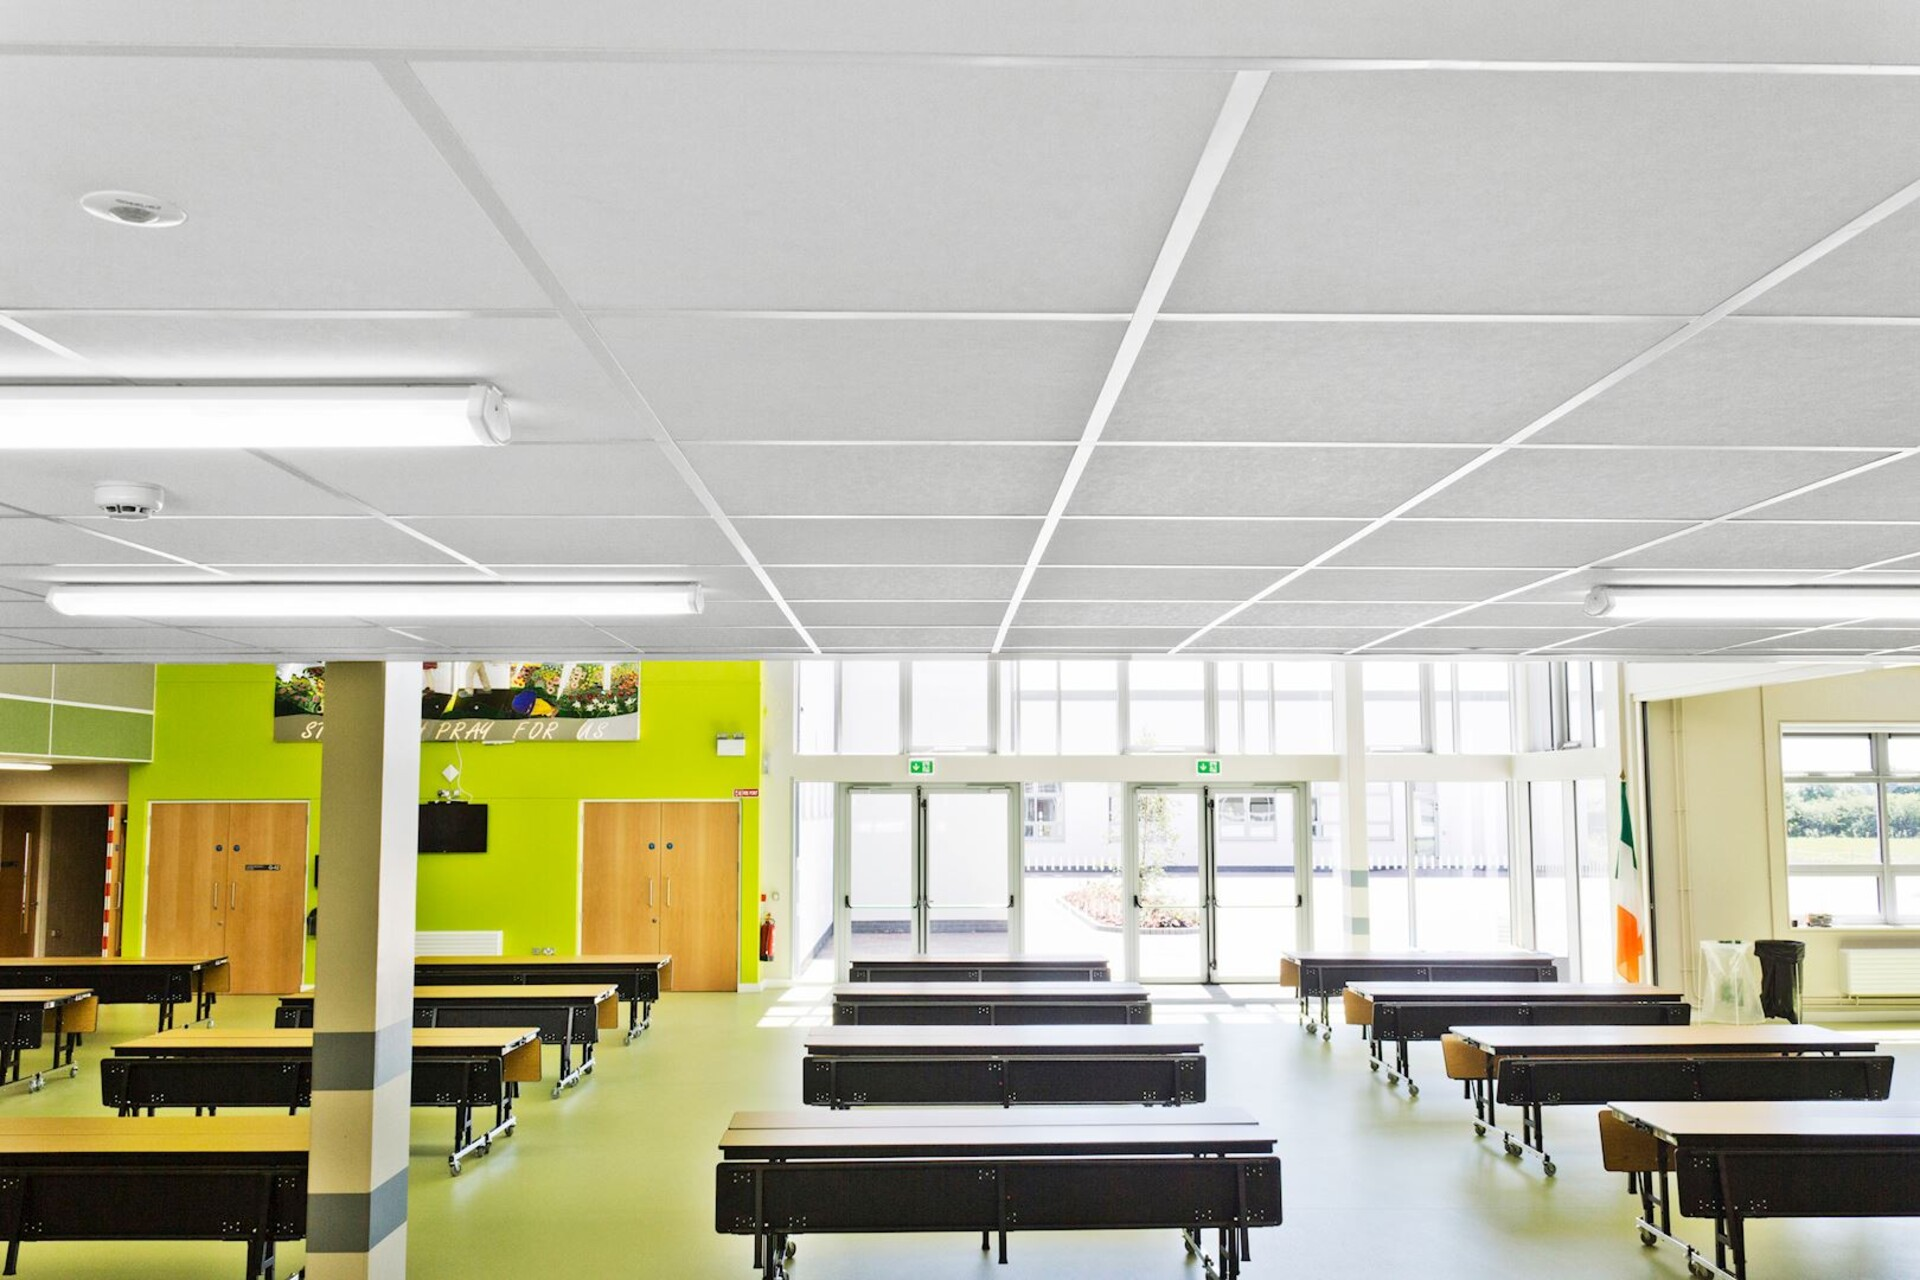 Suspended ceiling with Rockfon Artic ceiling tiles (Good acoustic properties, easy to clean and install)